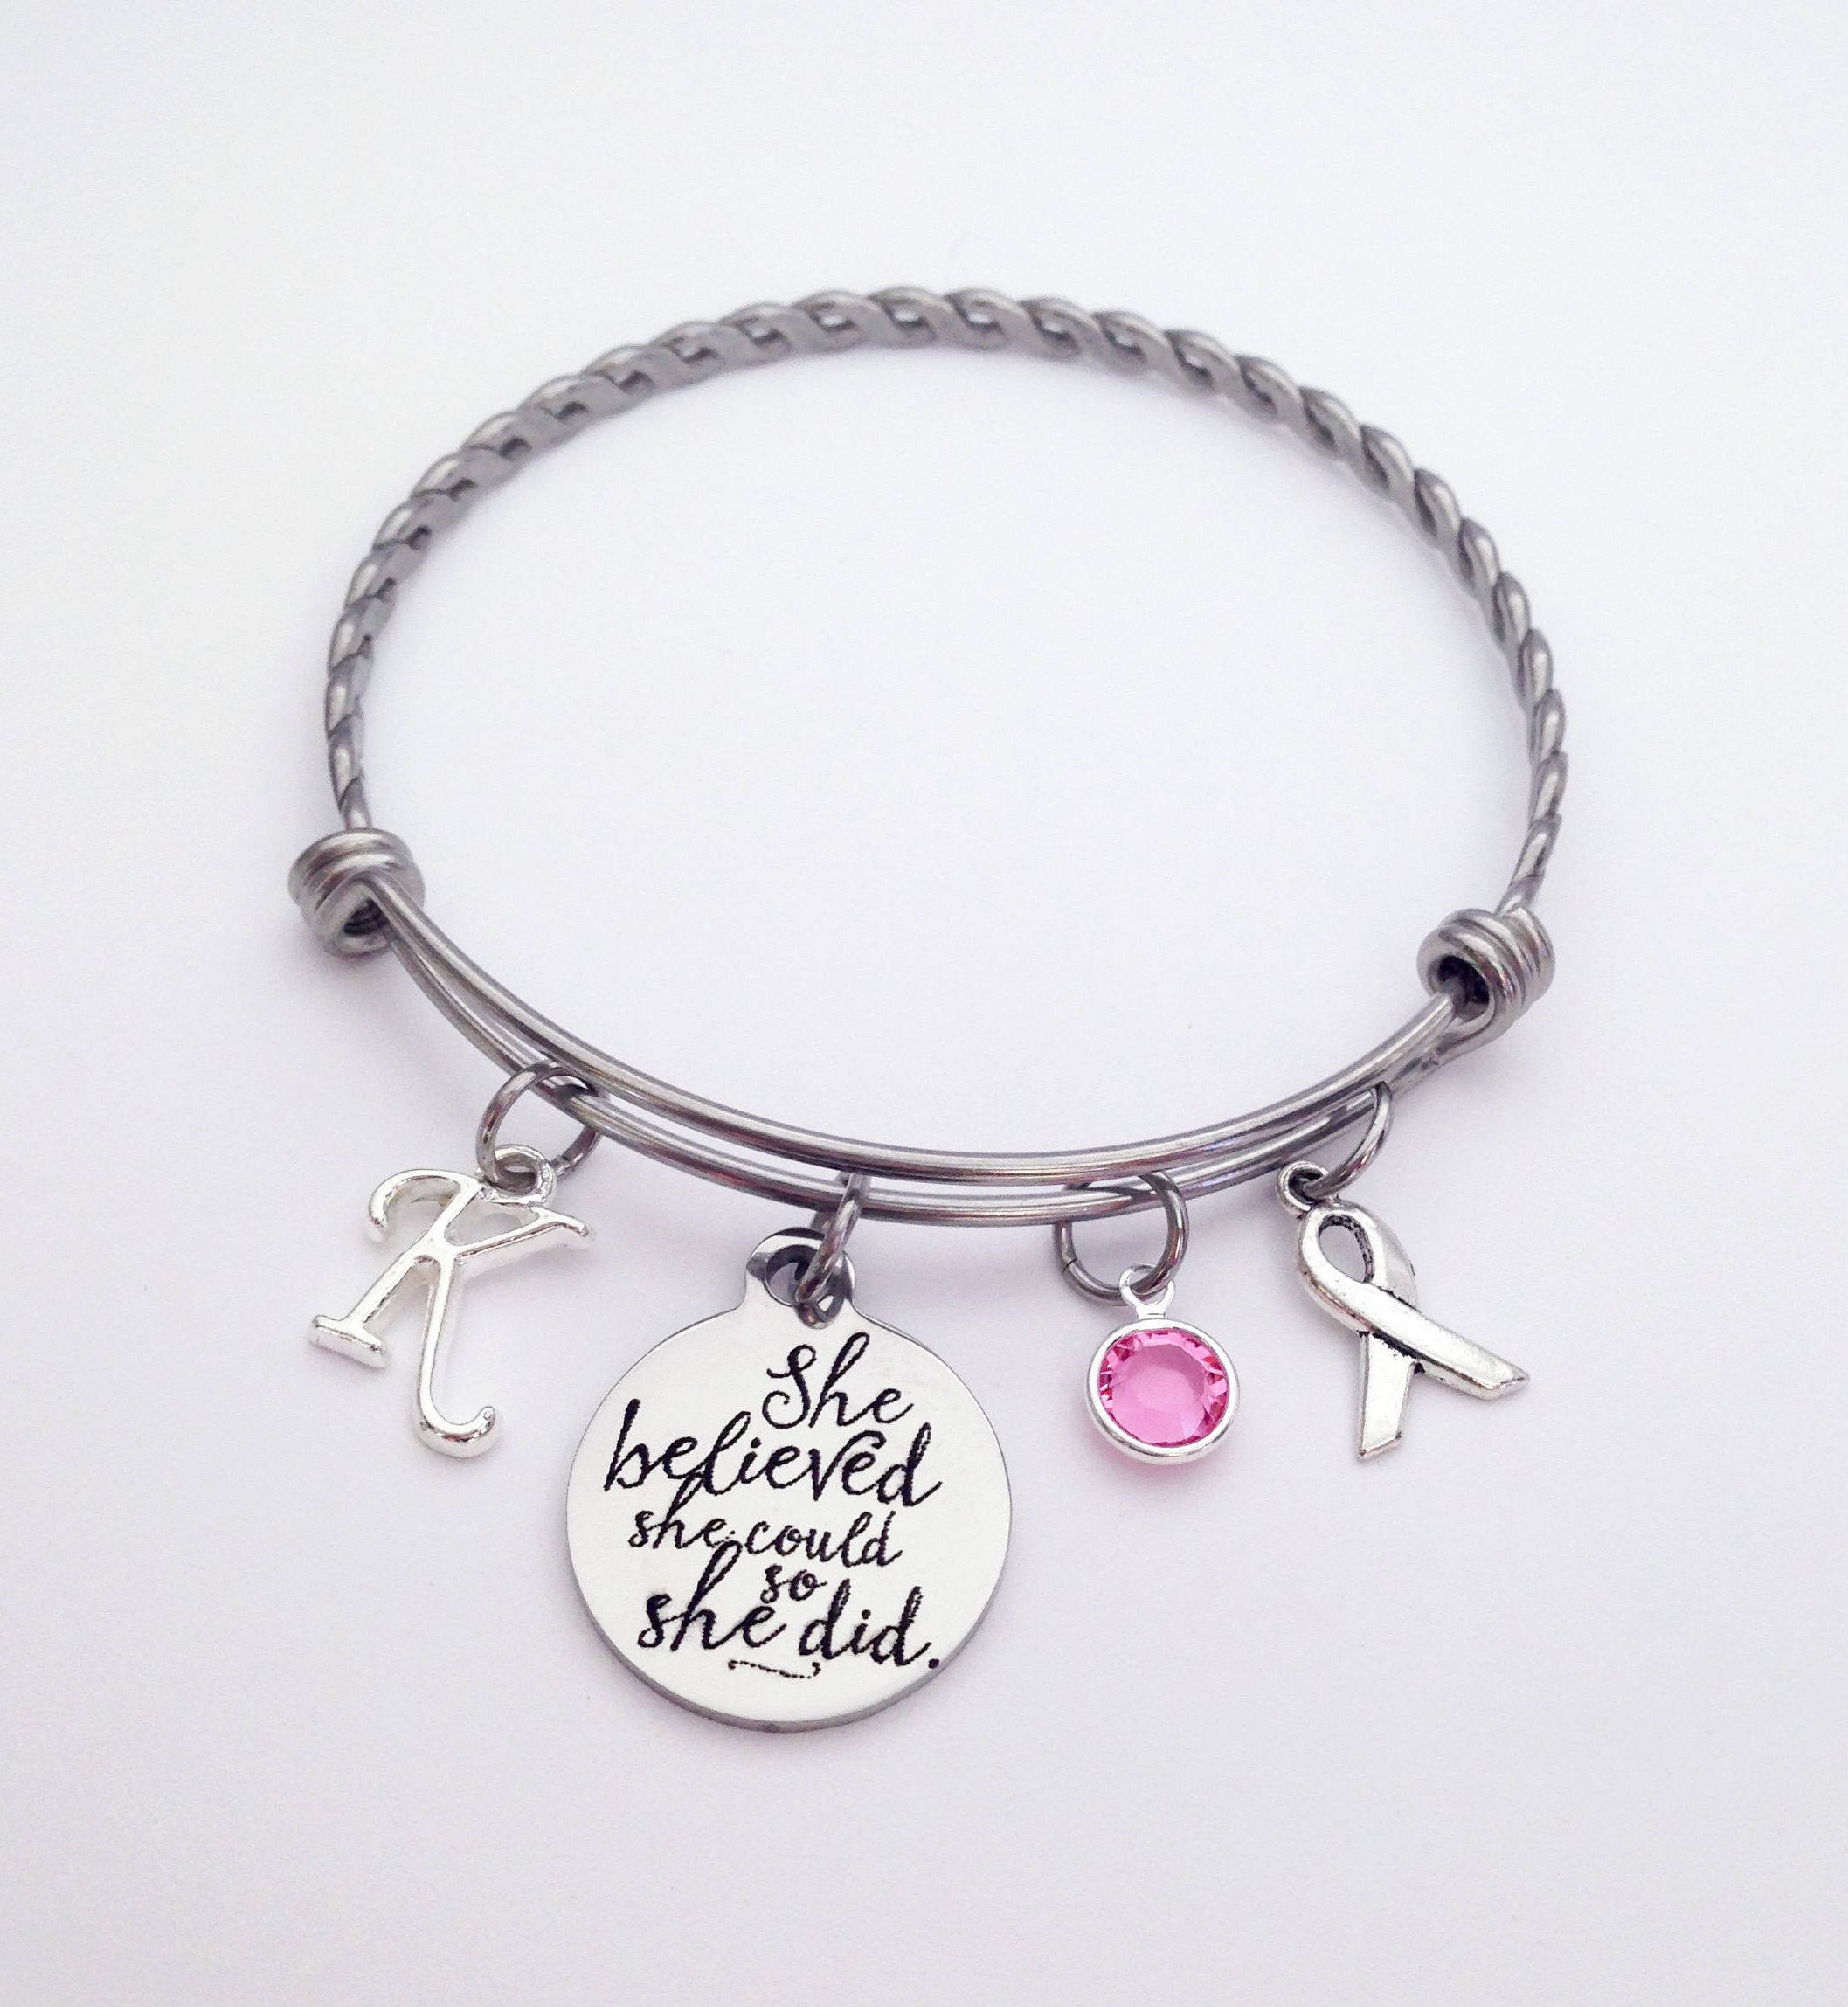 pin bracelet cancer breast ribbon hope gemstone charm survivor awareness